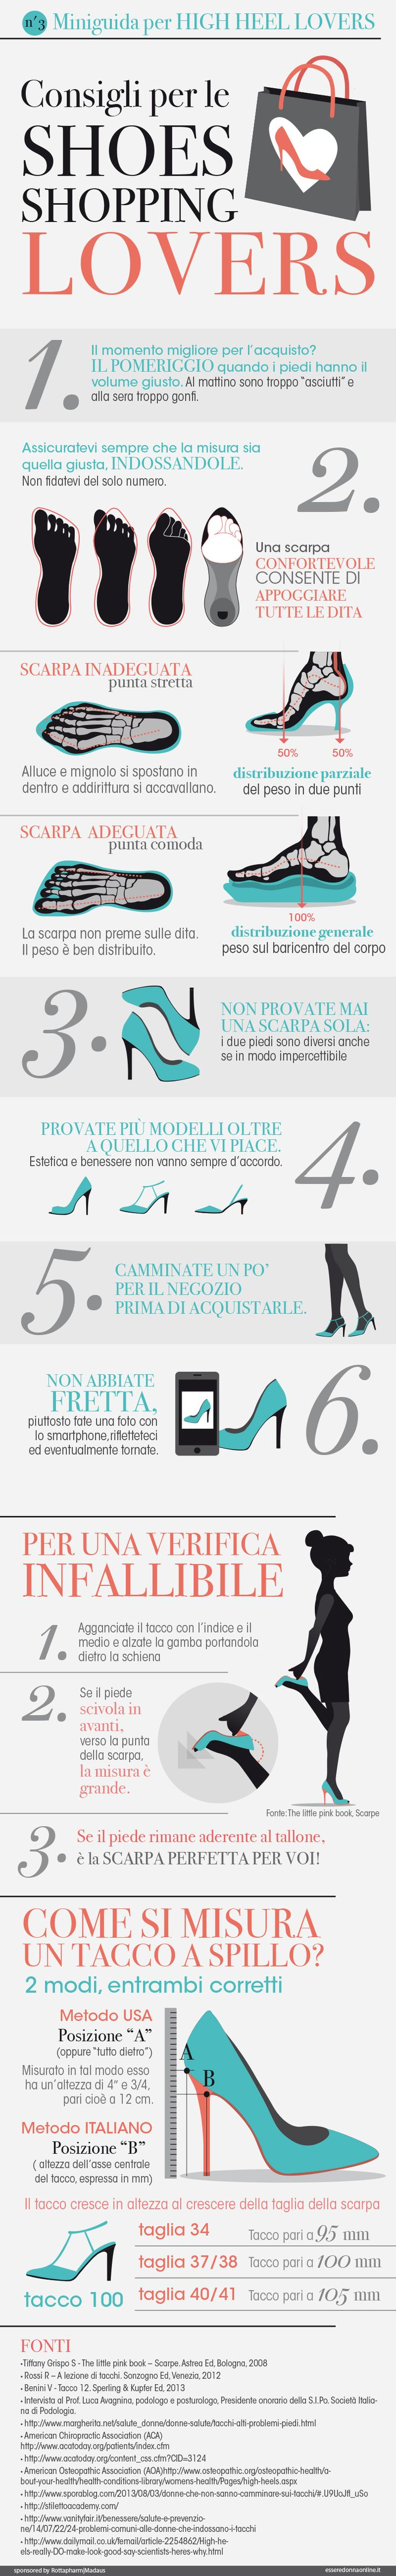 Consigli per le Shoes Shopping Lovers - for Esseredonnaonline.it design by Kleland studio di Alice Kle Borghi